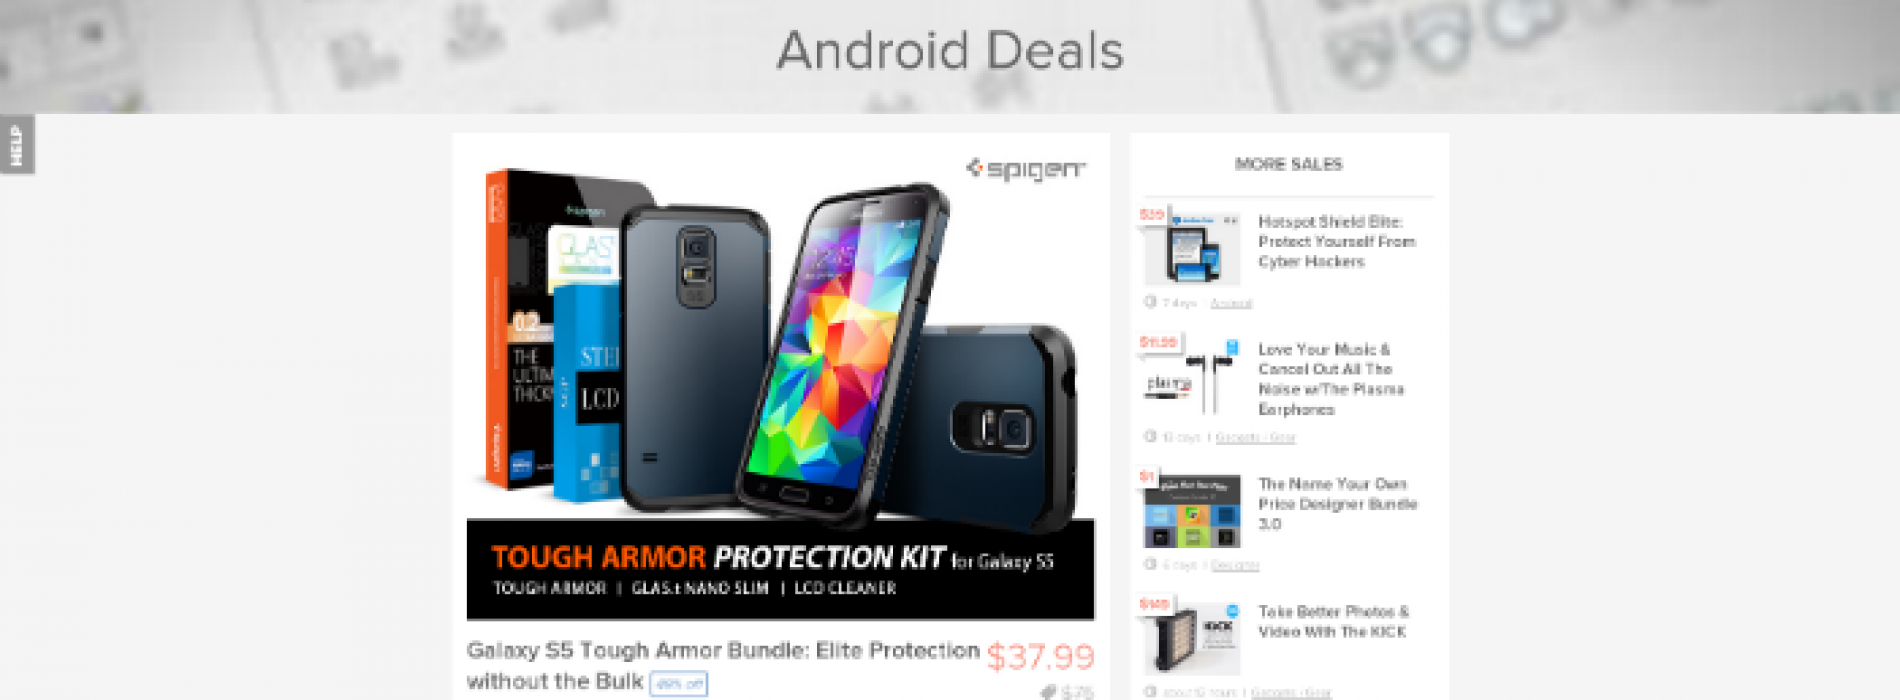 Introducing AndroidGuys Deals